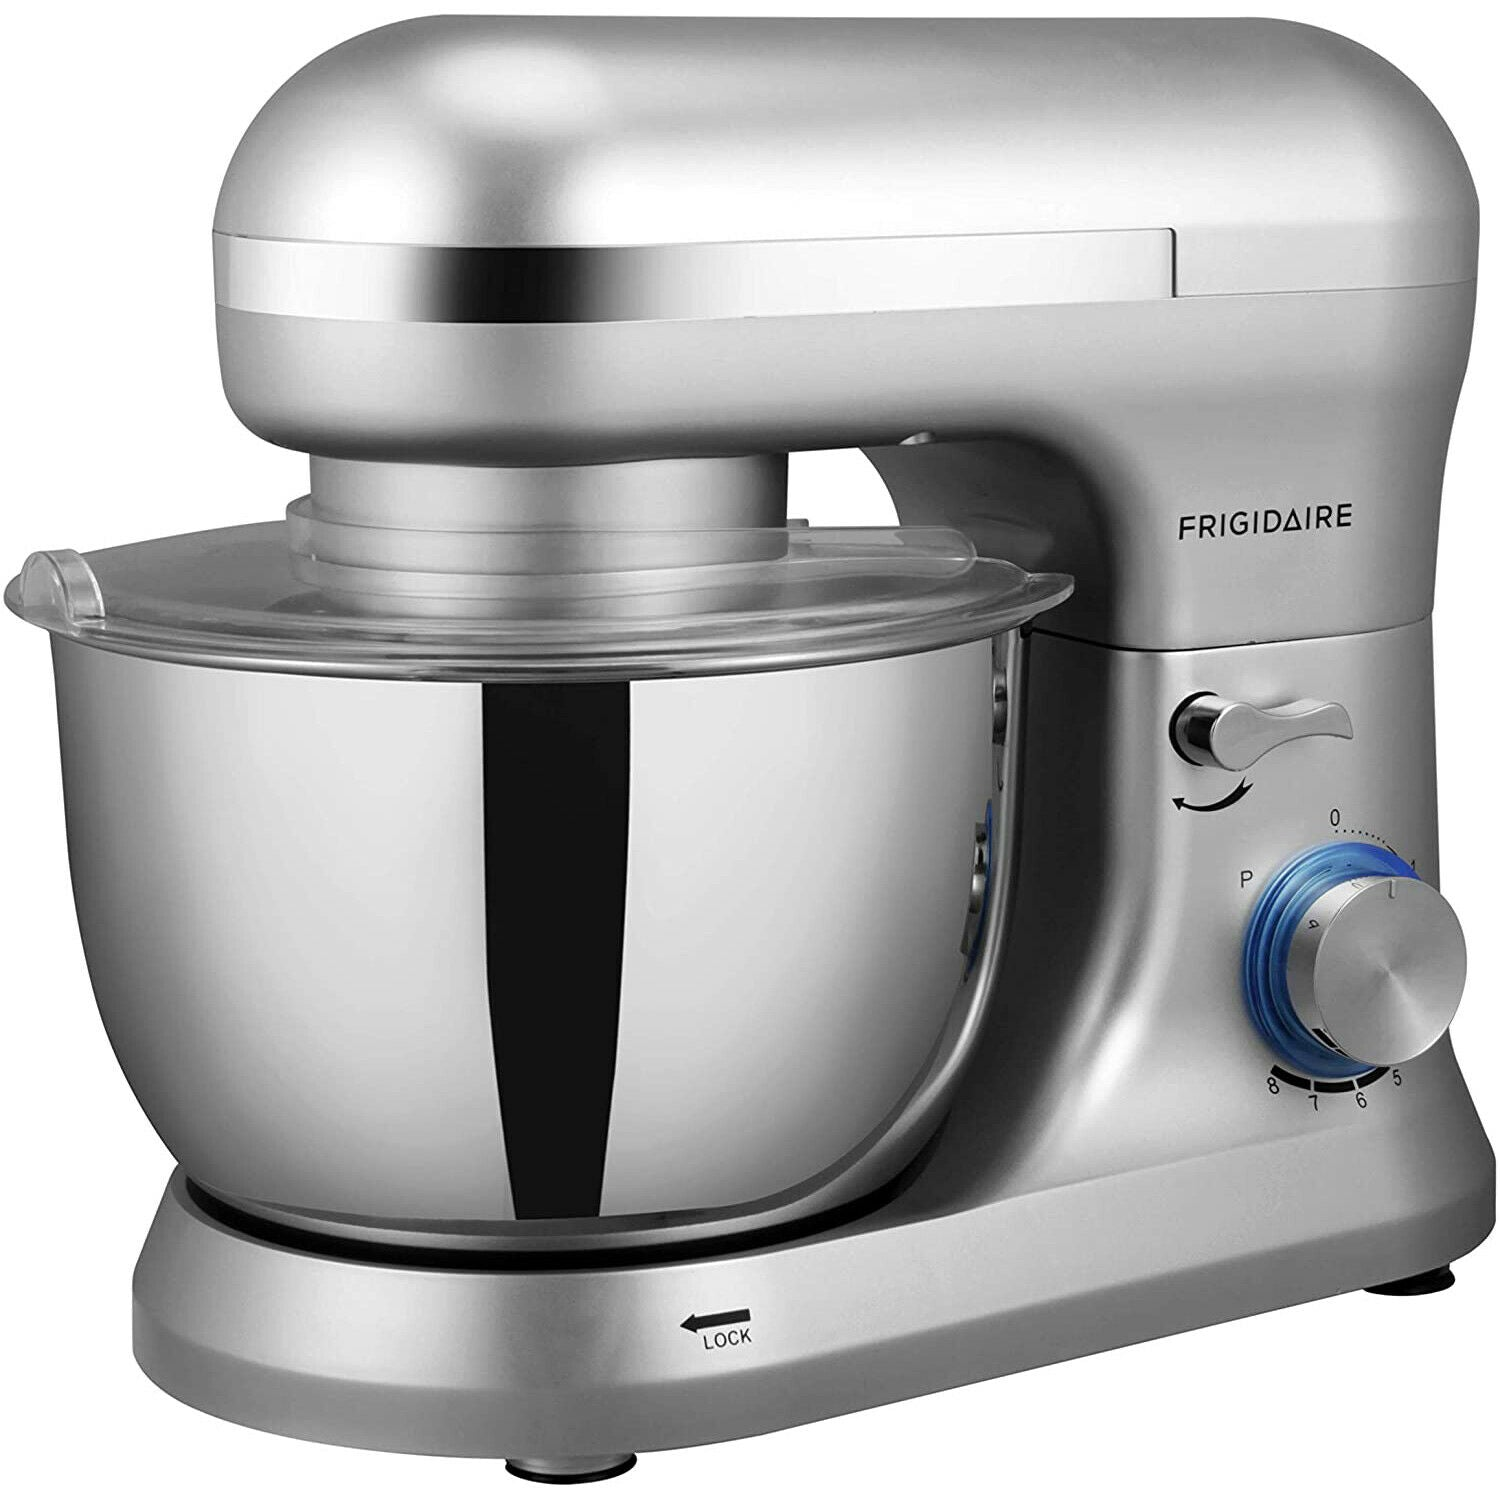 Frigidaire 4.5 Liter Stand Mixer, 8 Speeds with Dough Hook and Metal Whisk